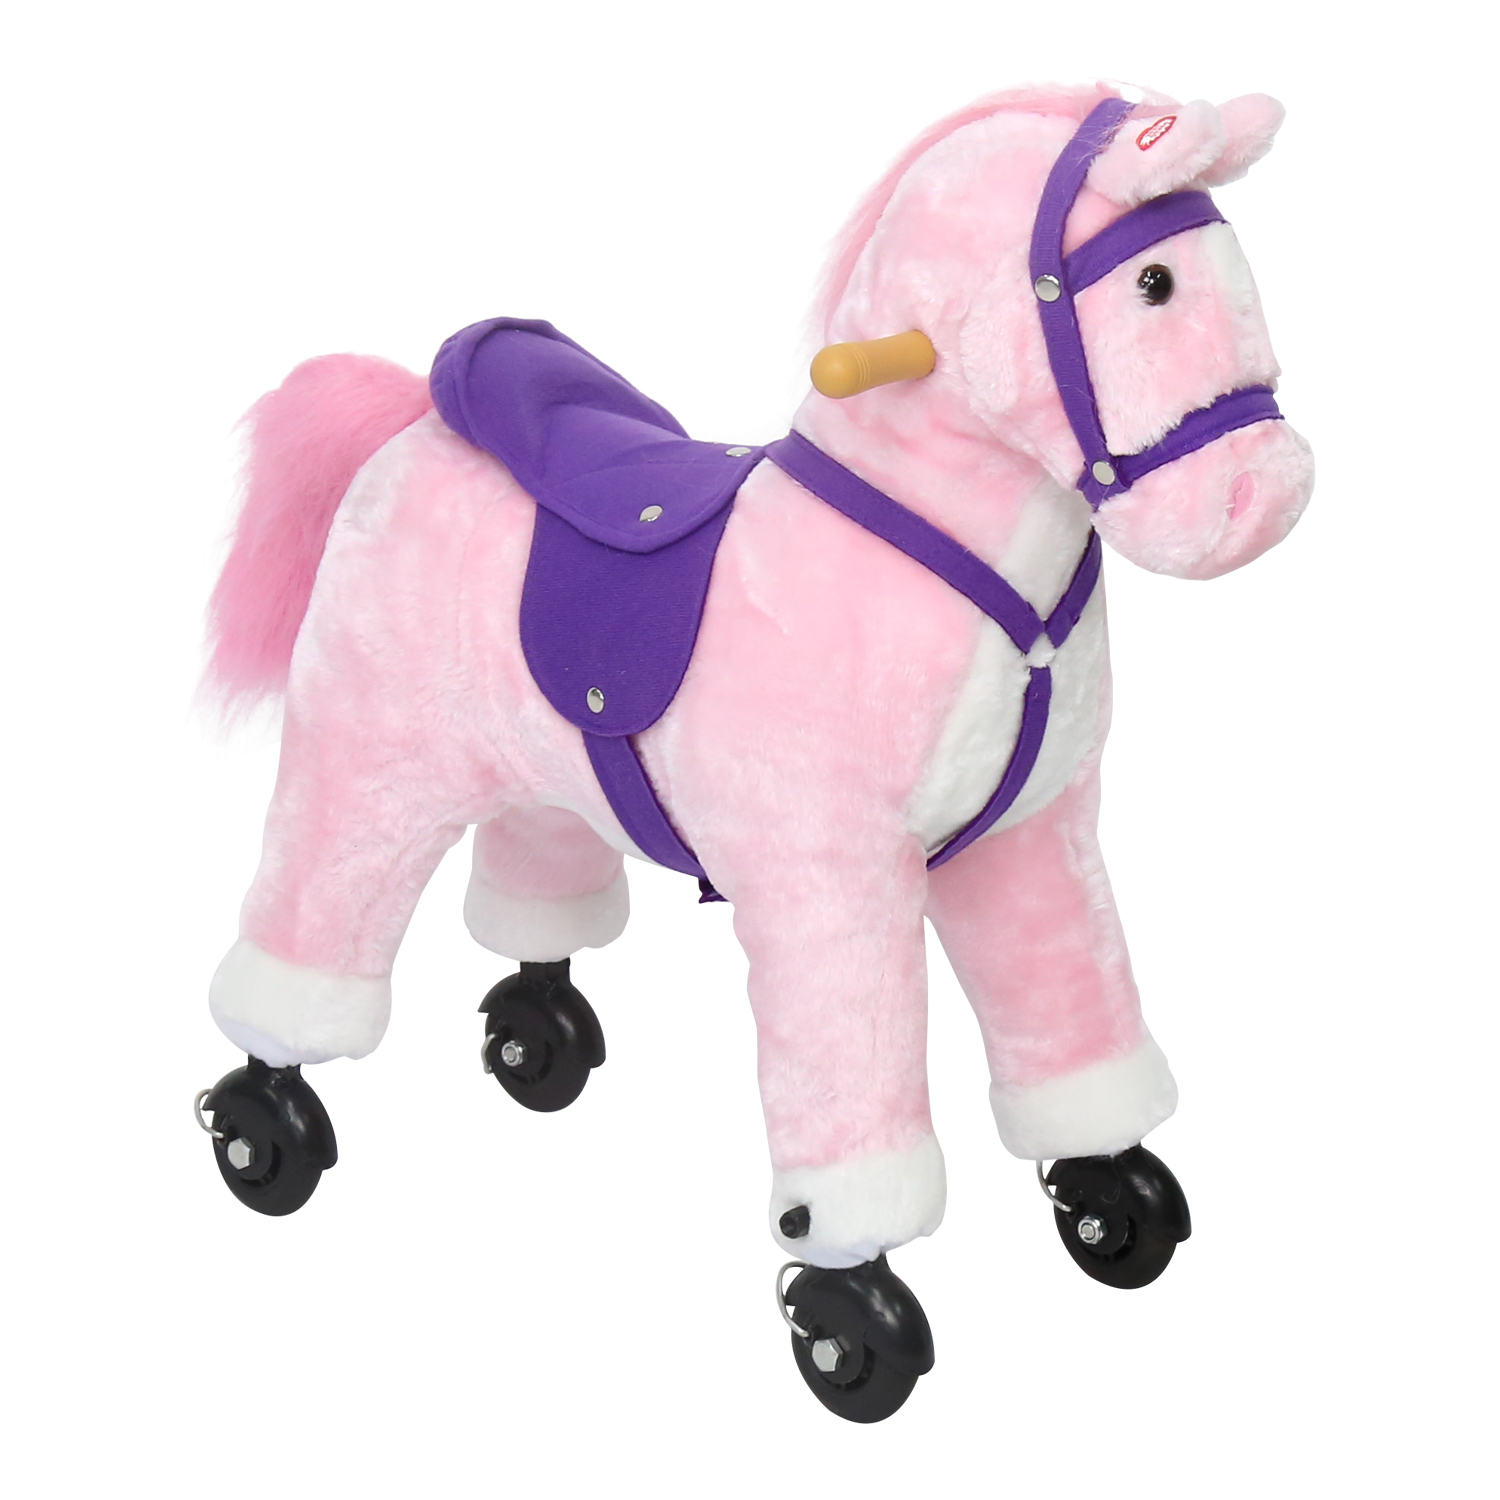 Kinbor Kids Girls Boys Walking Pony Ride on Horse Rocking Toy Neigh Sound w/Wheels